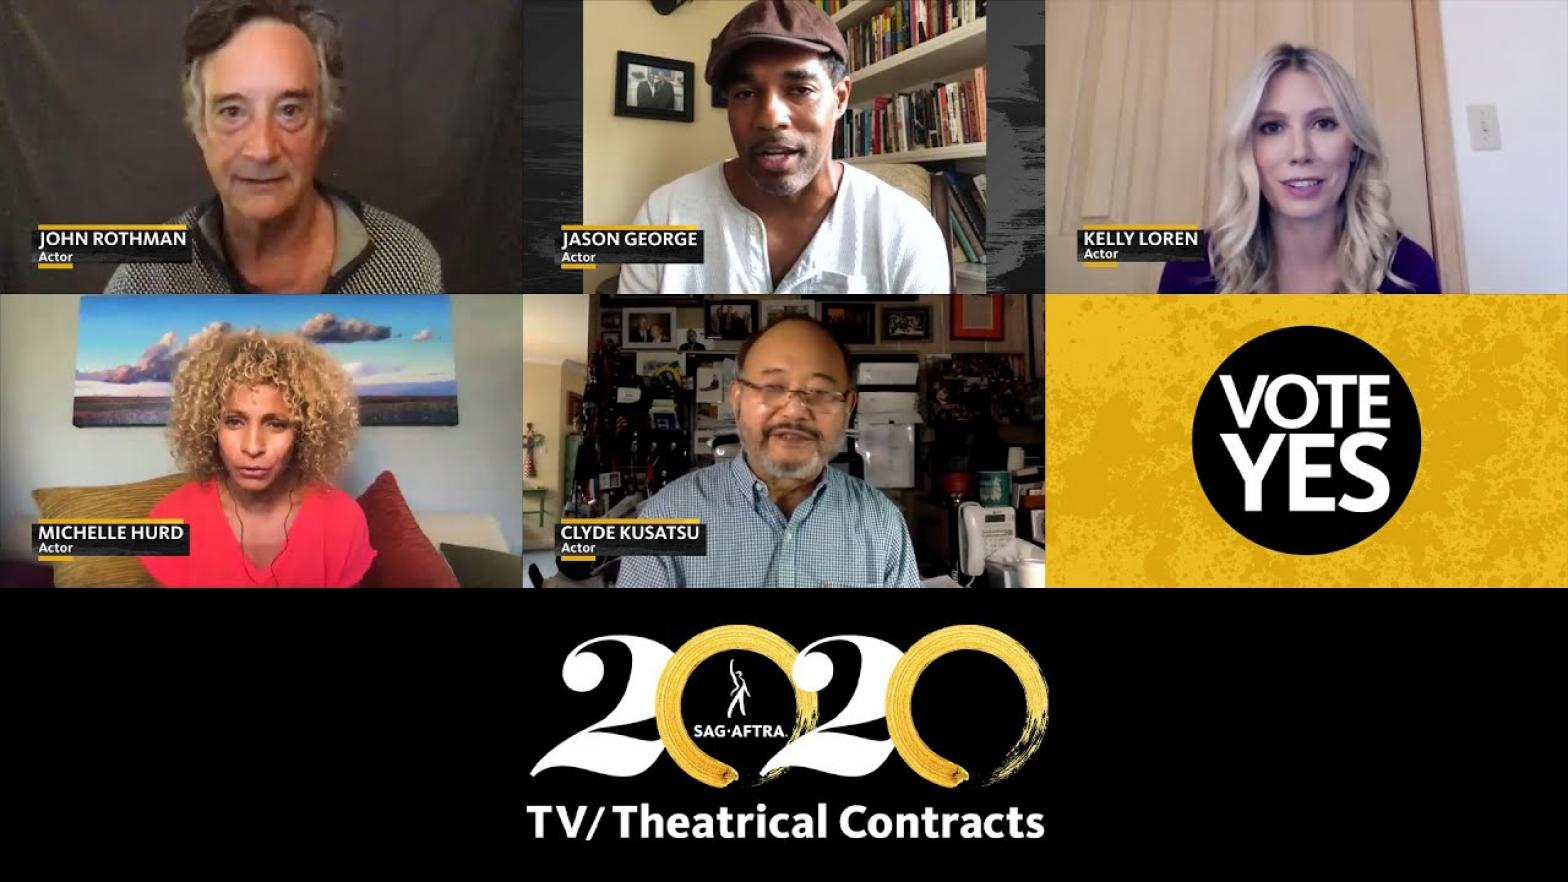 Two rows of thumbnails with 2020 TV/Theatrical logo across the bottom. Row 1 L-R: Rothman, George, Loren. Row 2, L-R: Hurd, Kusatsu and Vote Yes graphic in bottom right with black circle and white text on a yellow background